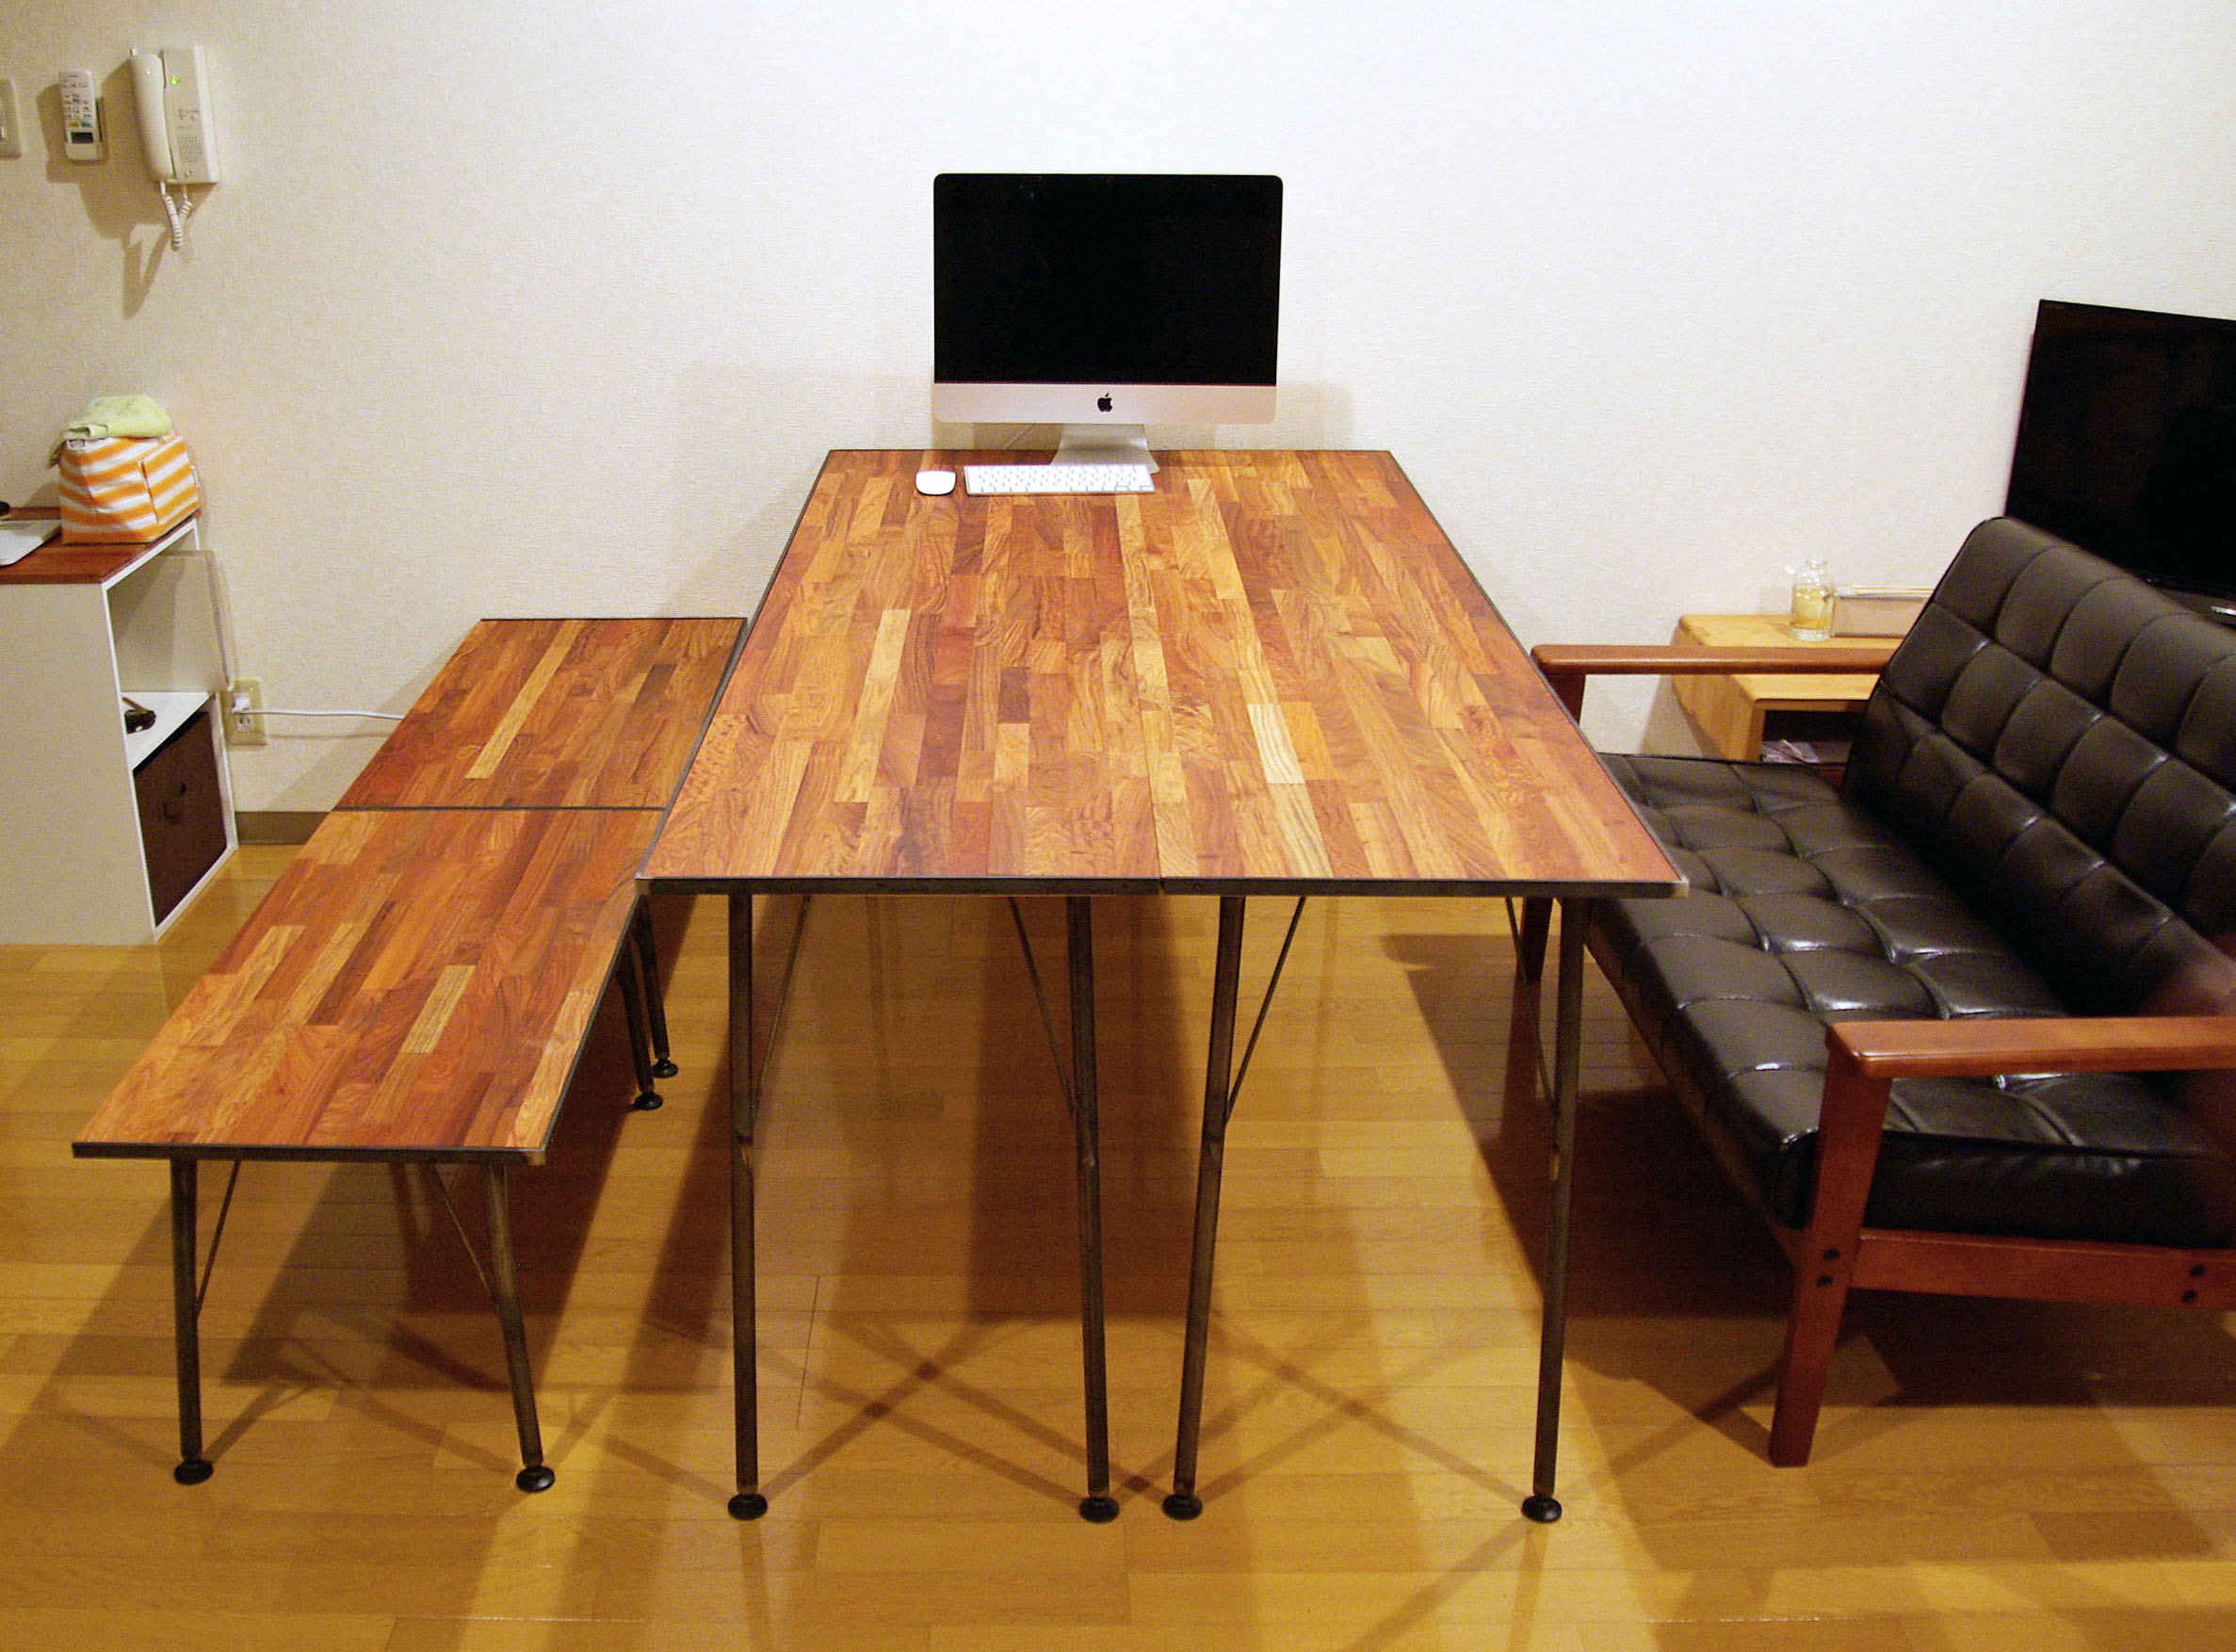 How to Make the Dining Table(Photograph version)